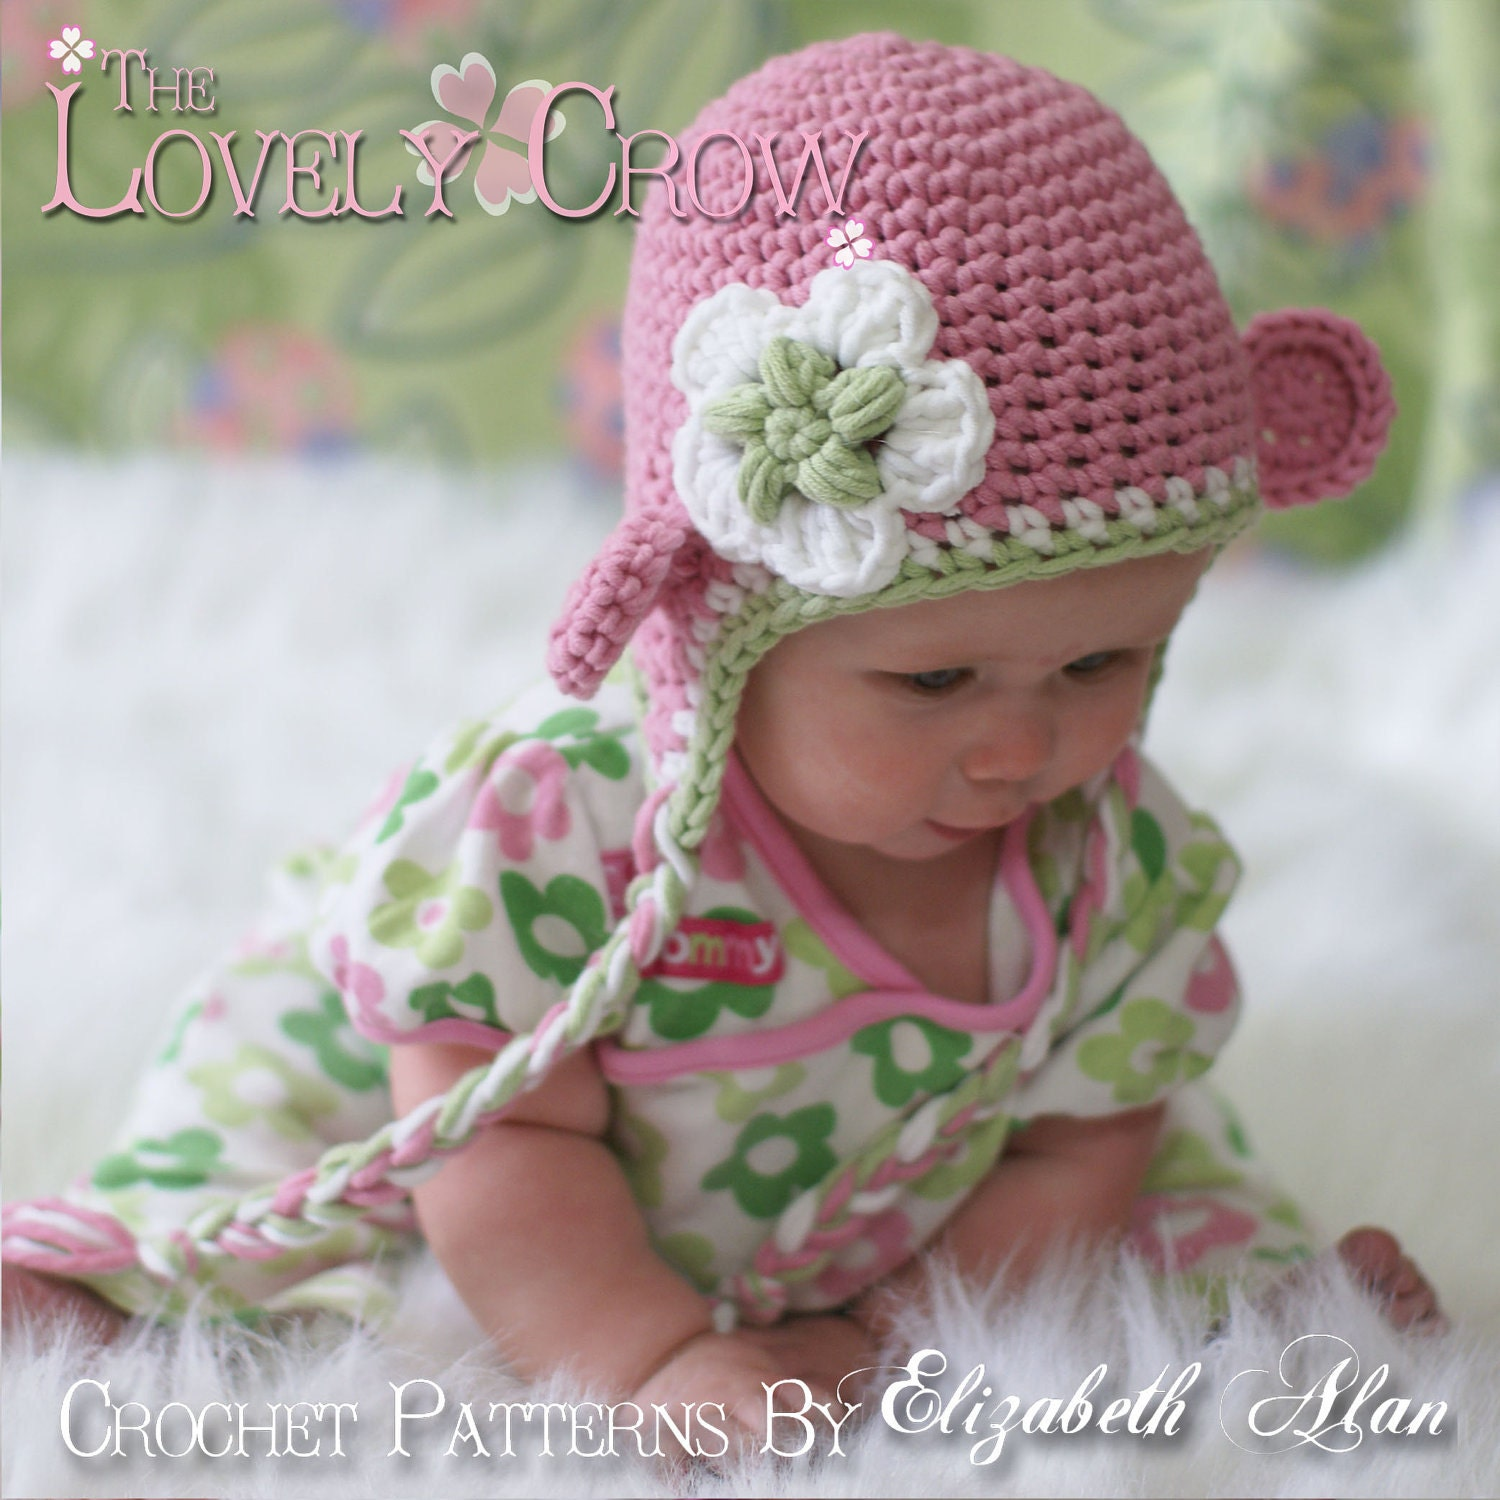 Crochet Pattern Baby Hat Bulky Yarn : BULKY YARN CROCHET PATTERN Crochet Patterns